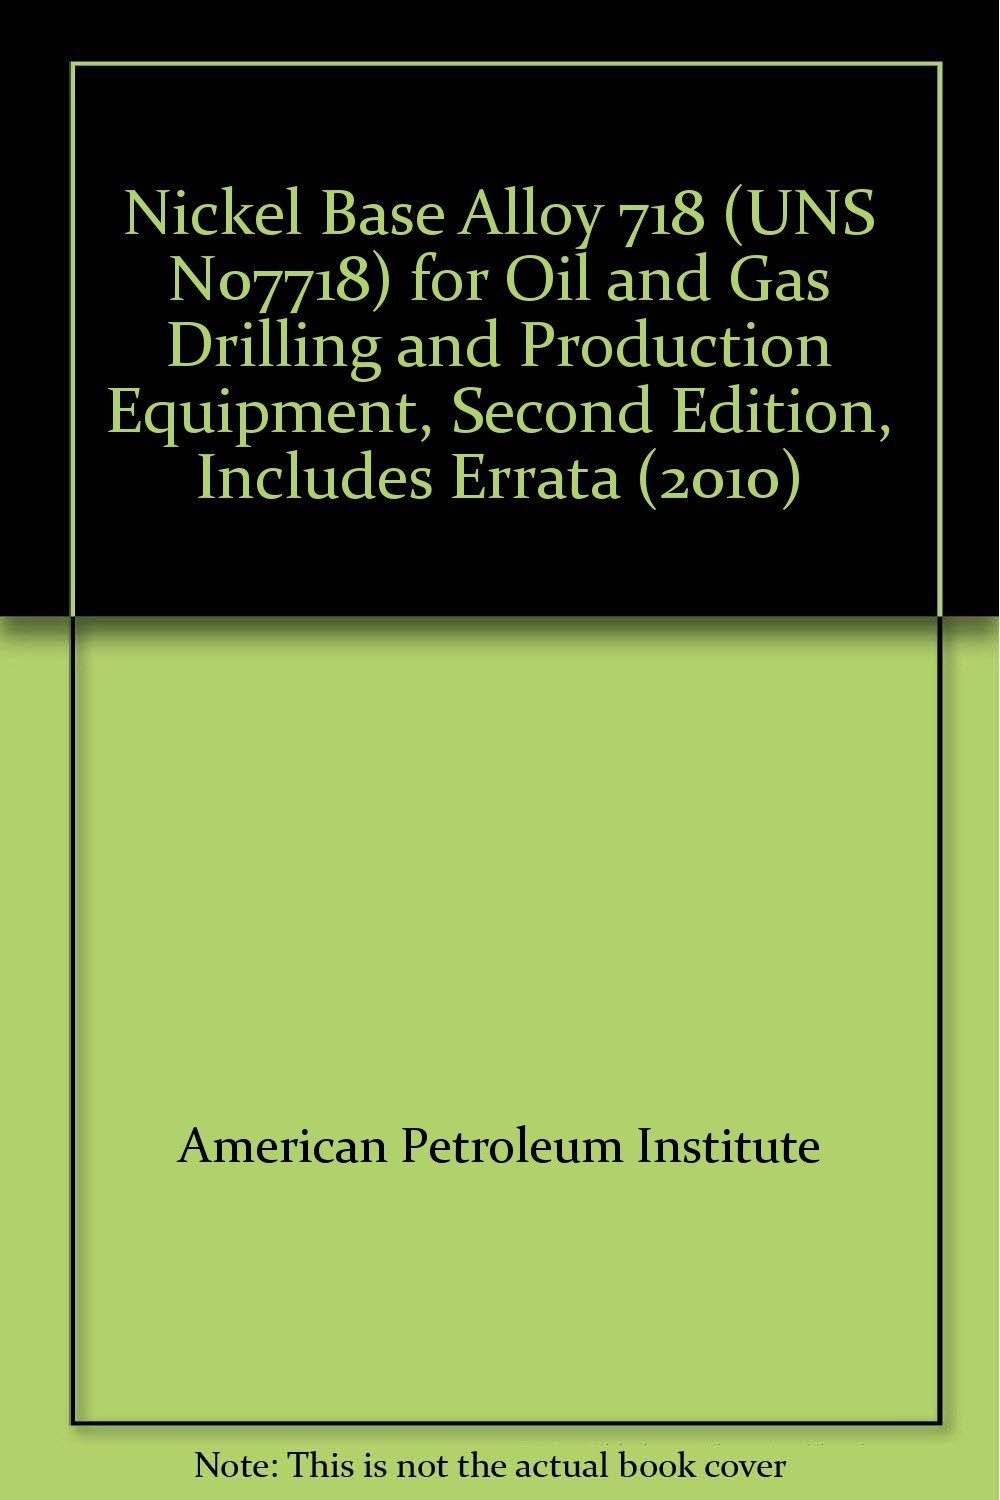 Nickel Base Alloy 718 (UNS N07718) for Oil and Gas Drilling and Production Equipment, Second Edition, Includes Errata (2010) pdf epub